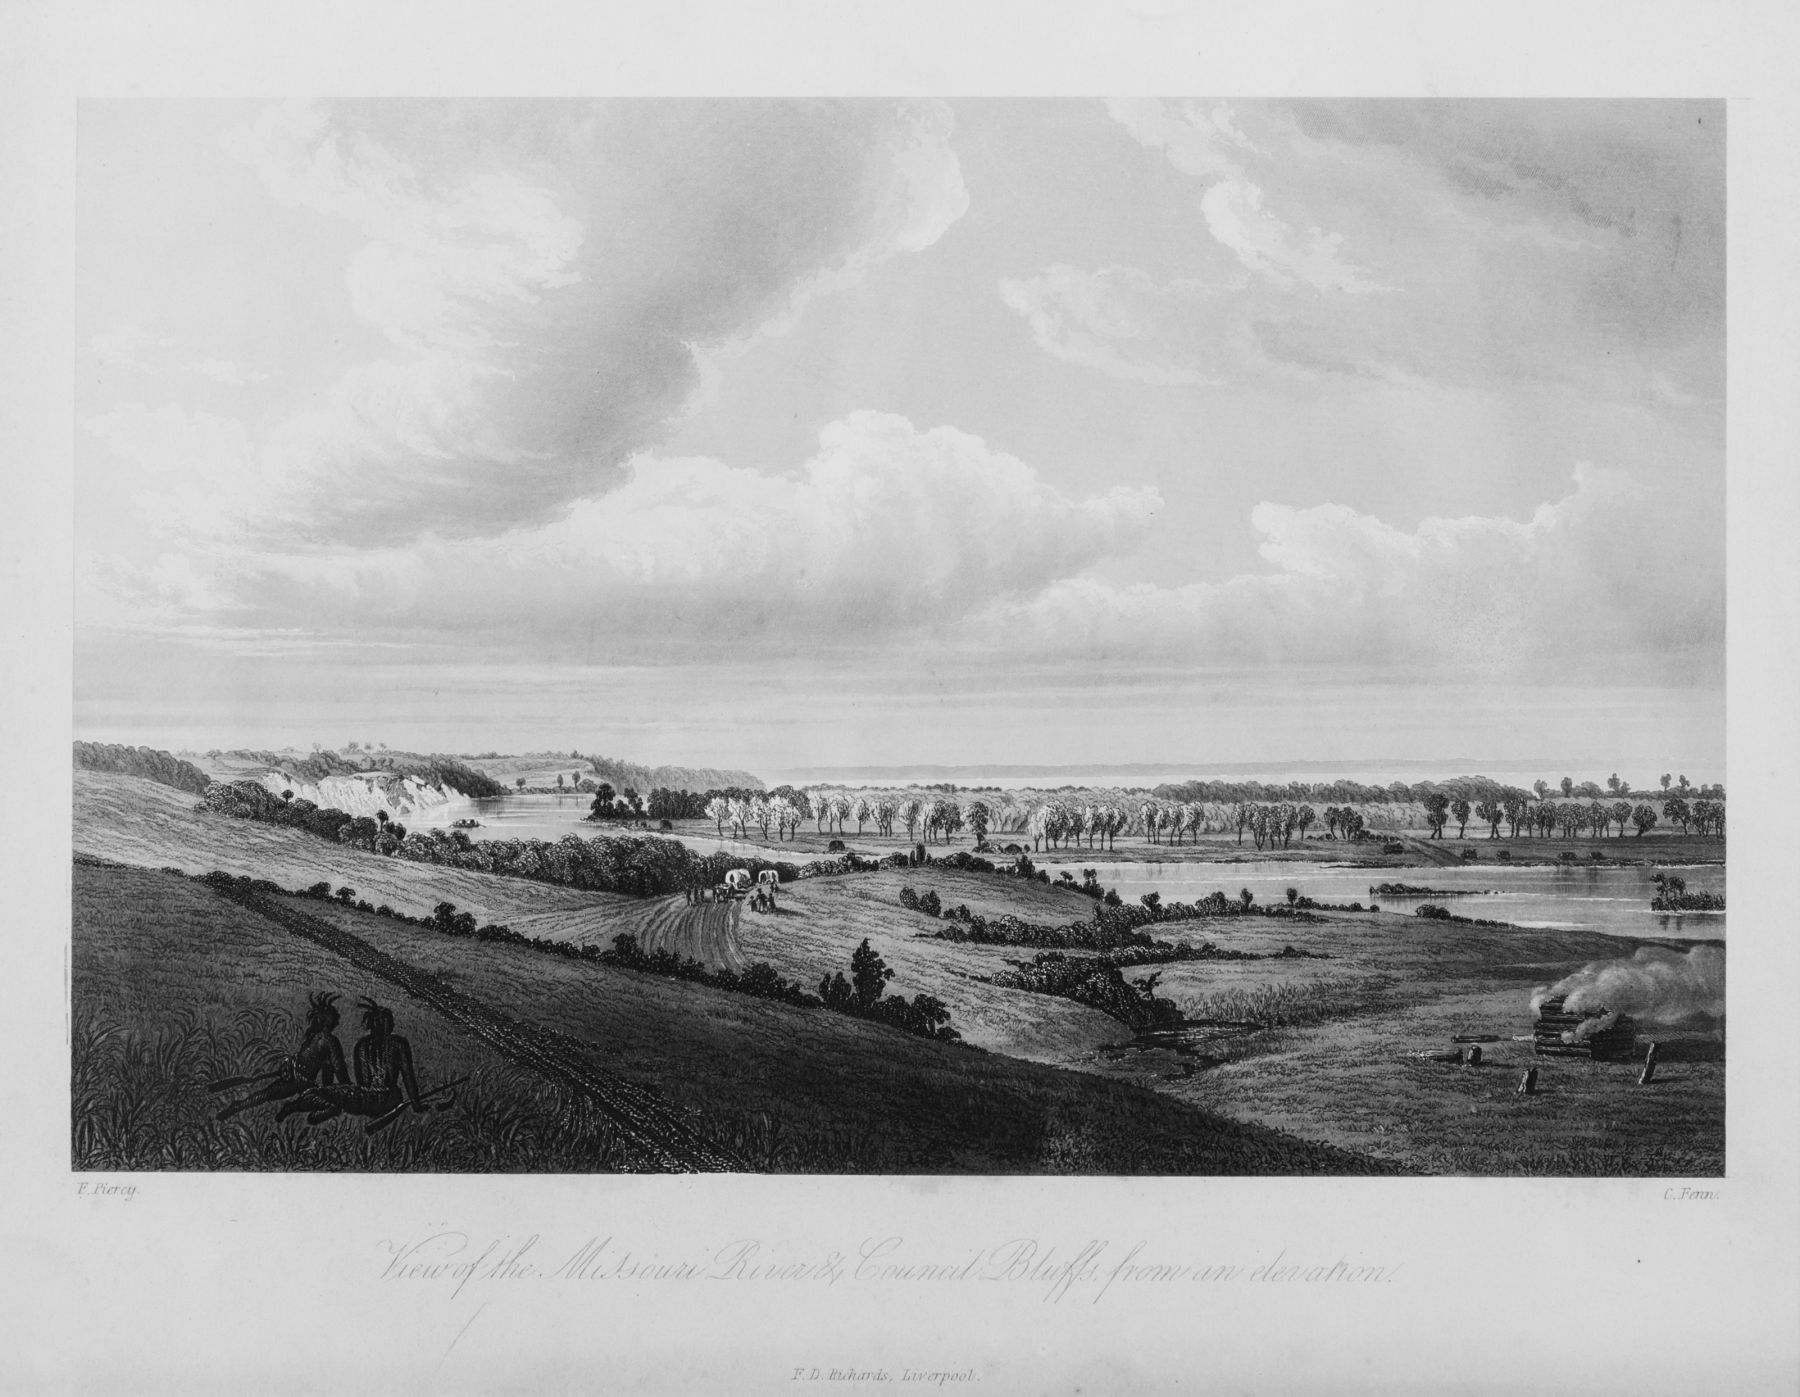 View of the Missouri River, Council Bluffs